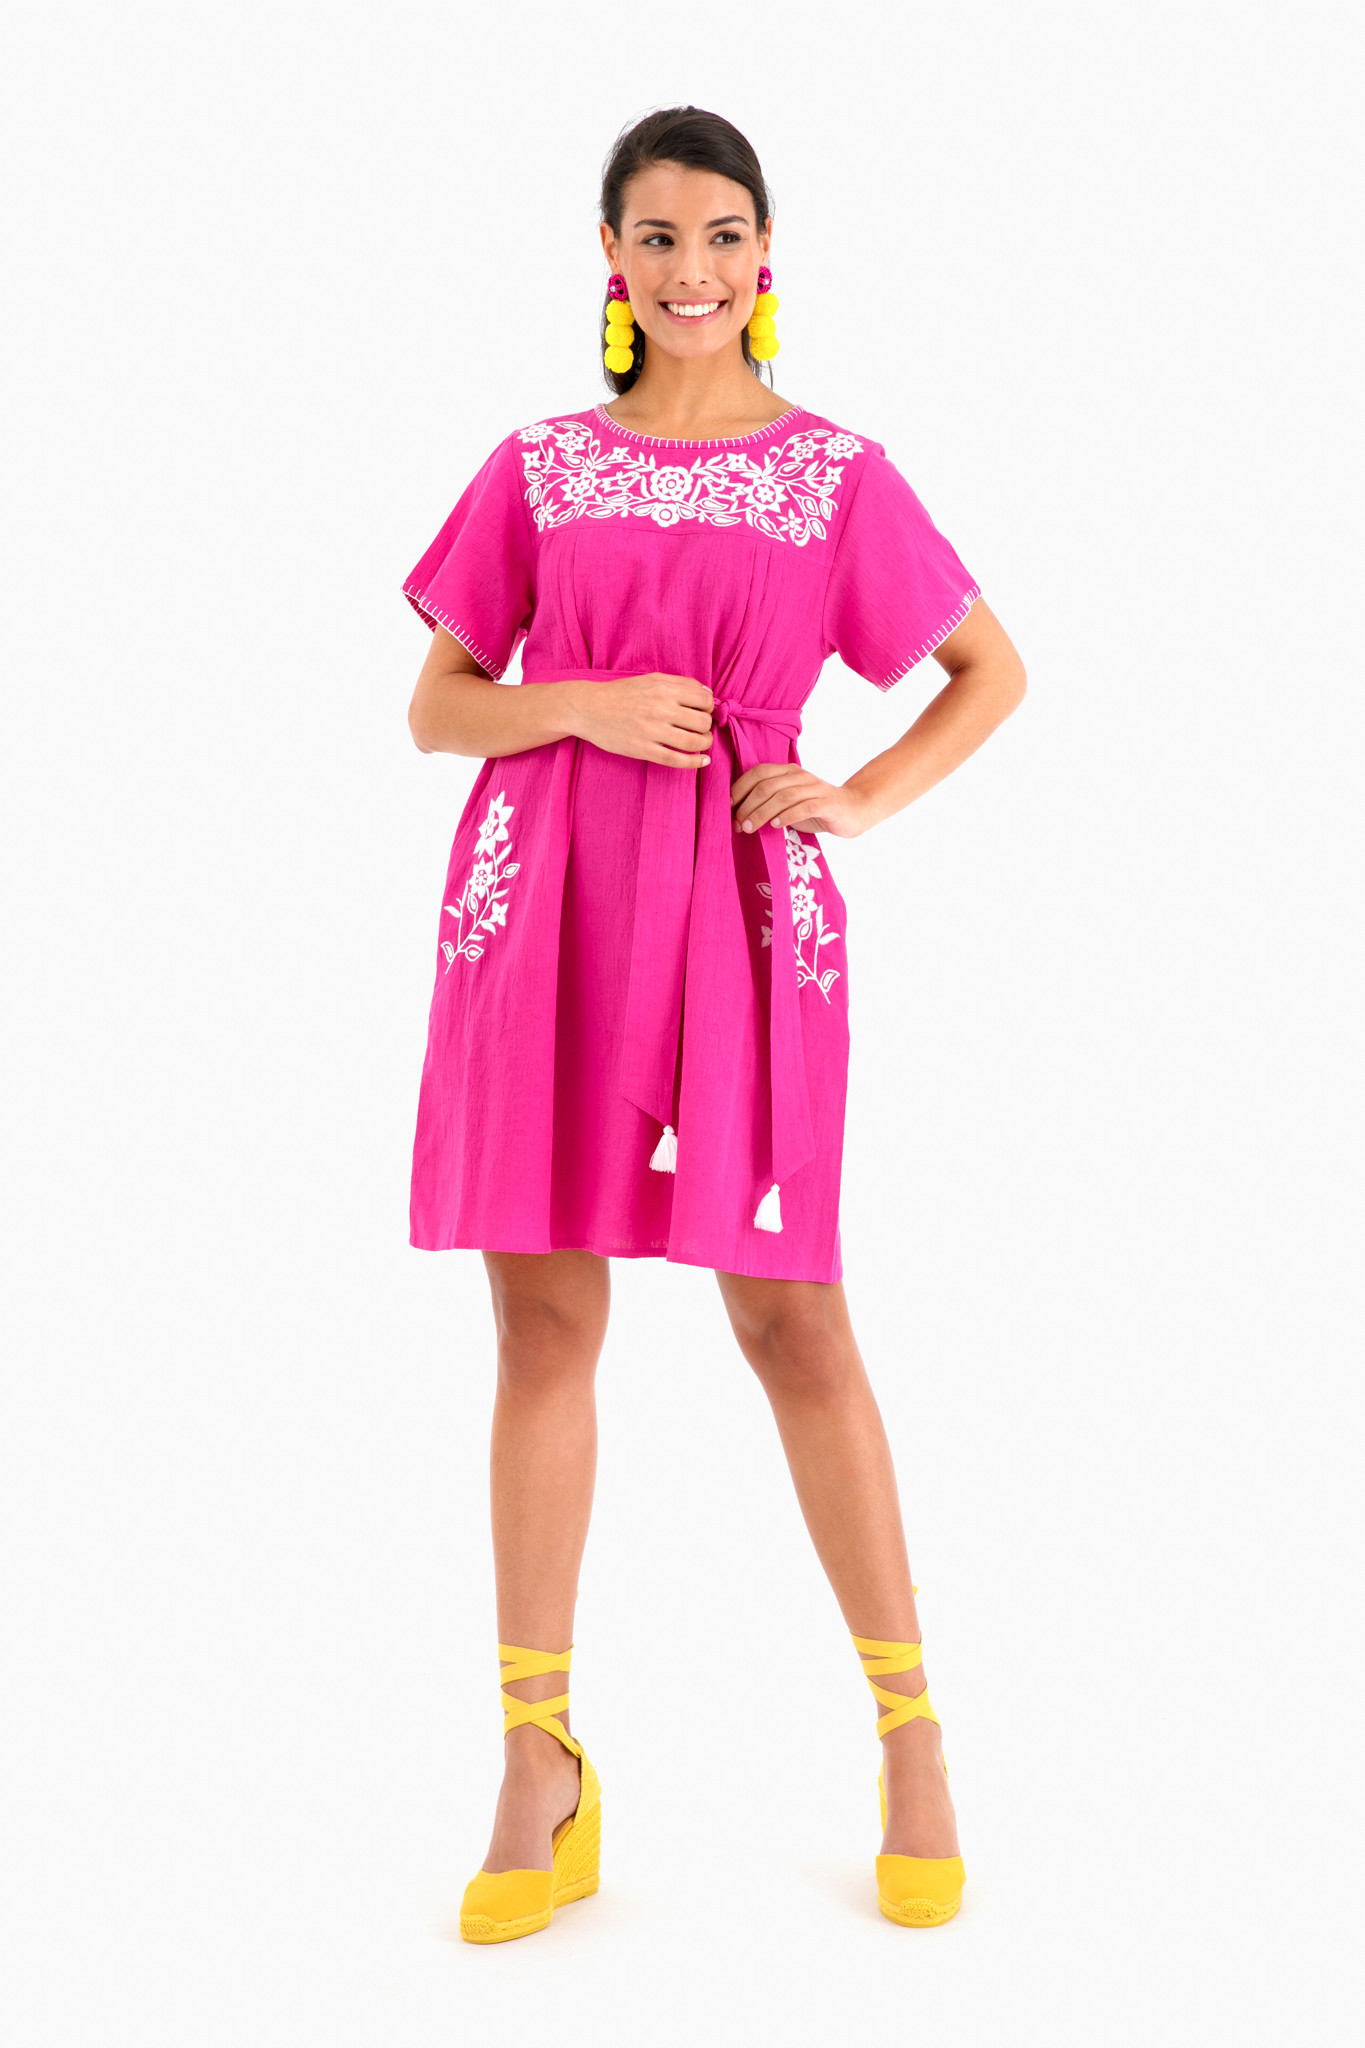 Pink Mexican Dress with White Embroidery and Yellow Espadrilles